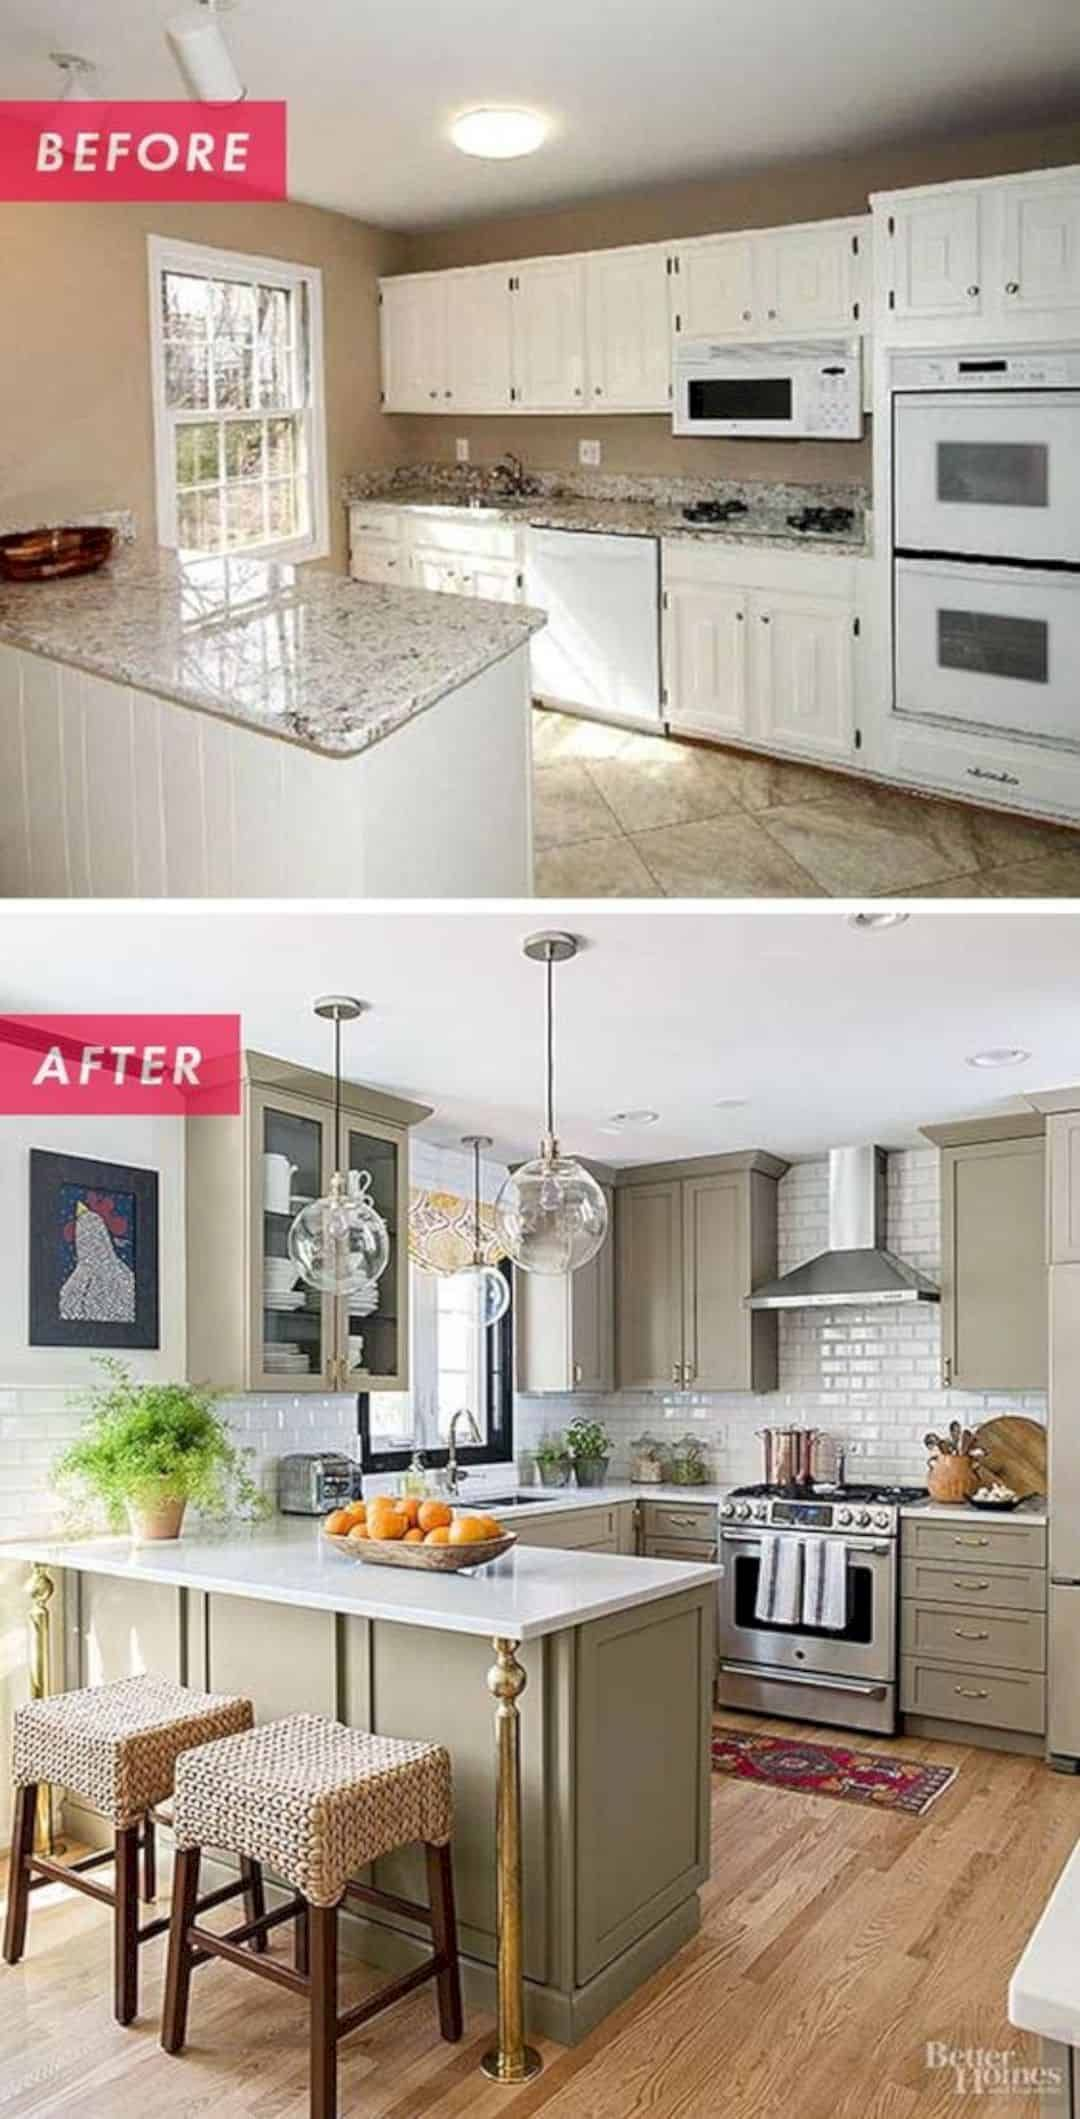 Before and After: 10 Stunning Kitchen Transformations